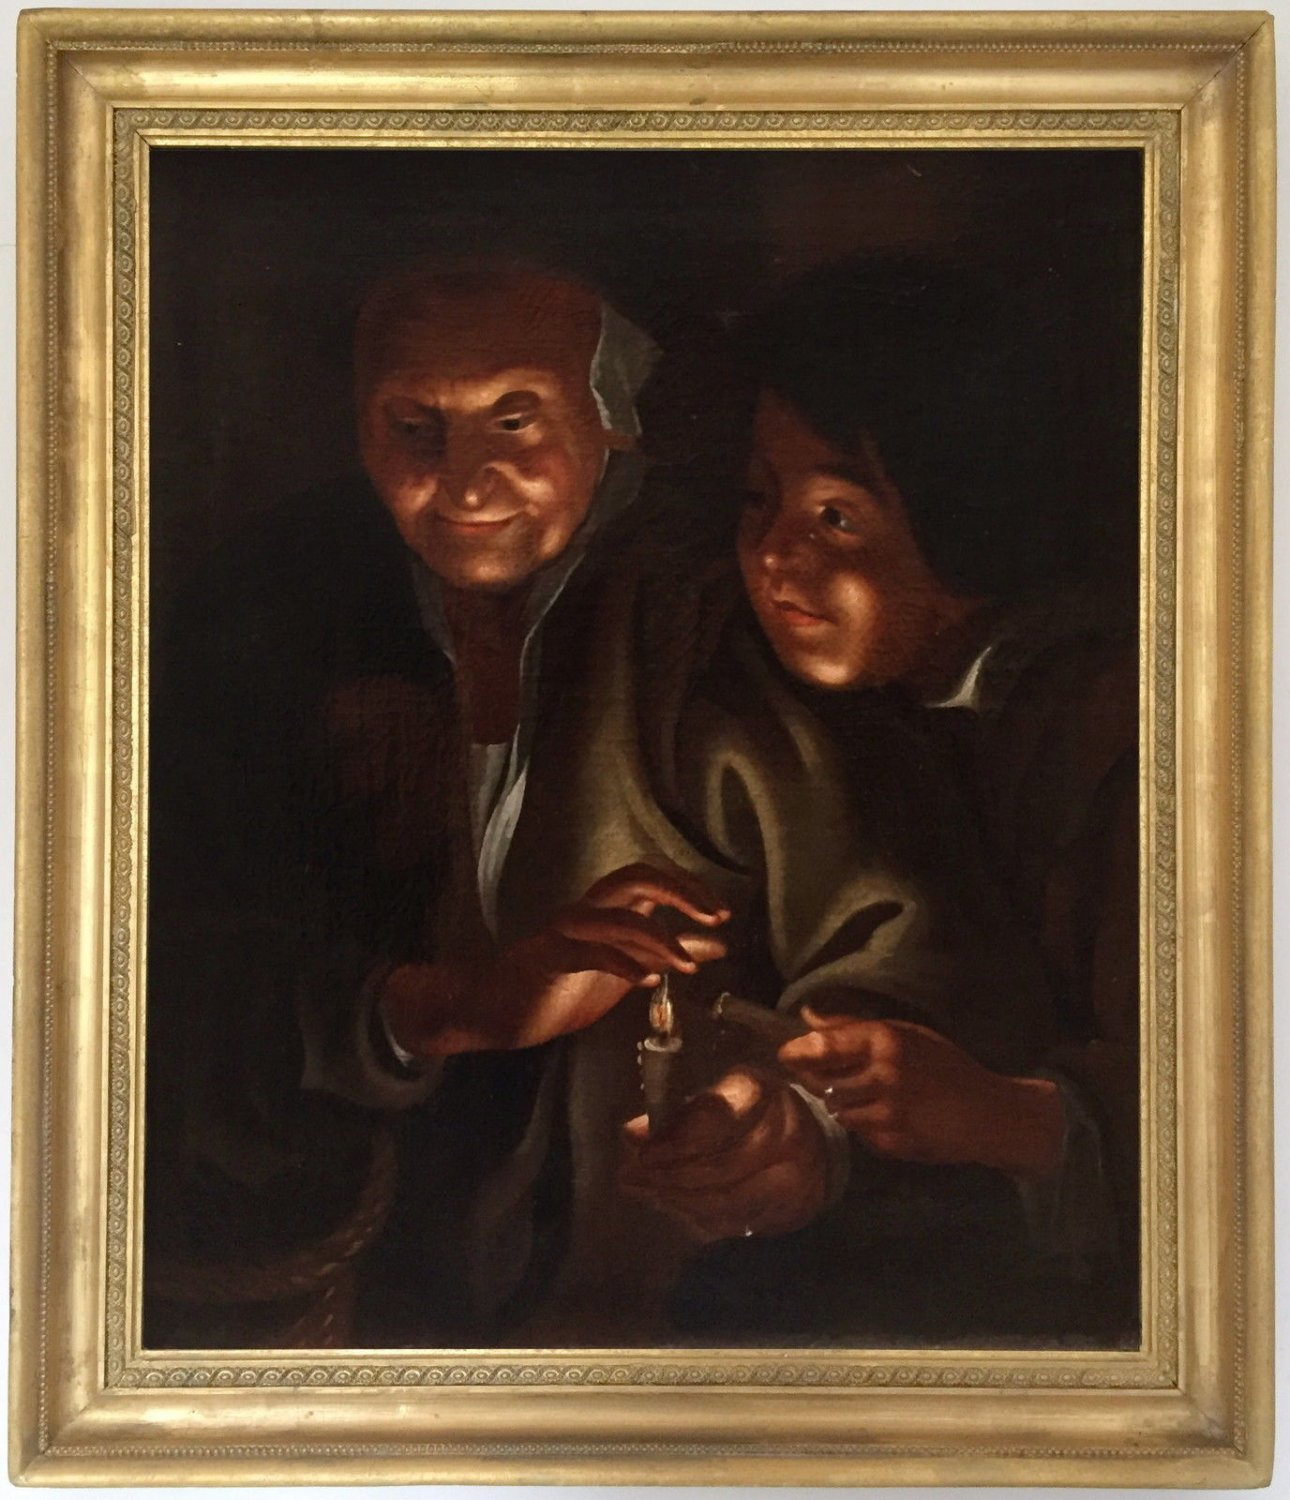 Figures by Candlelight Old Master Oil Painting Godfried Schalcken (Dutch, 1643-1706